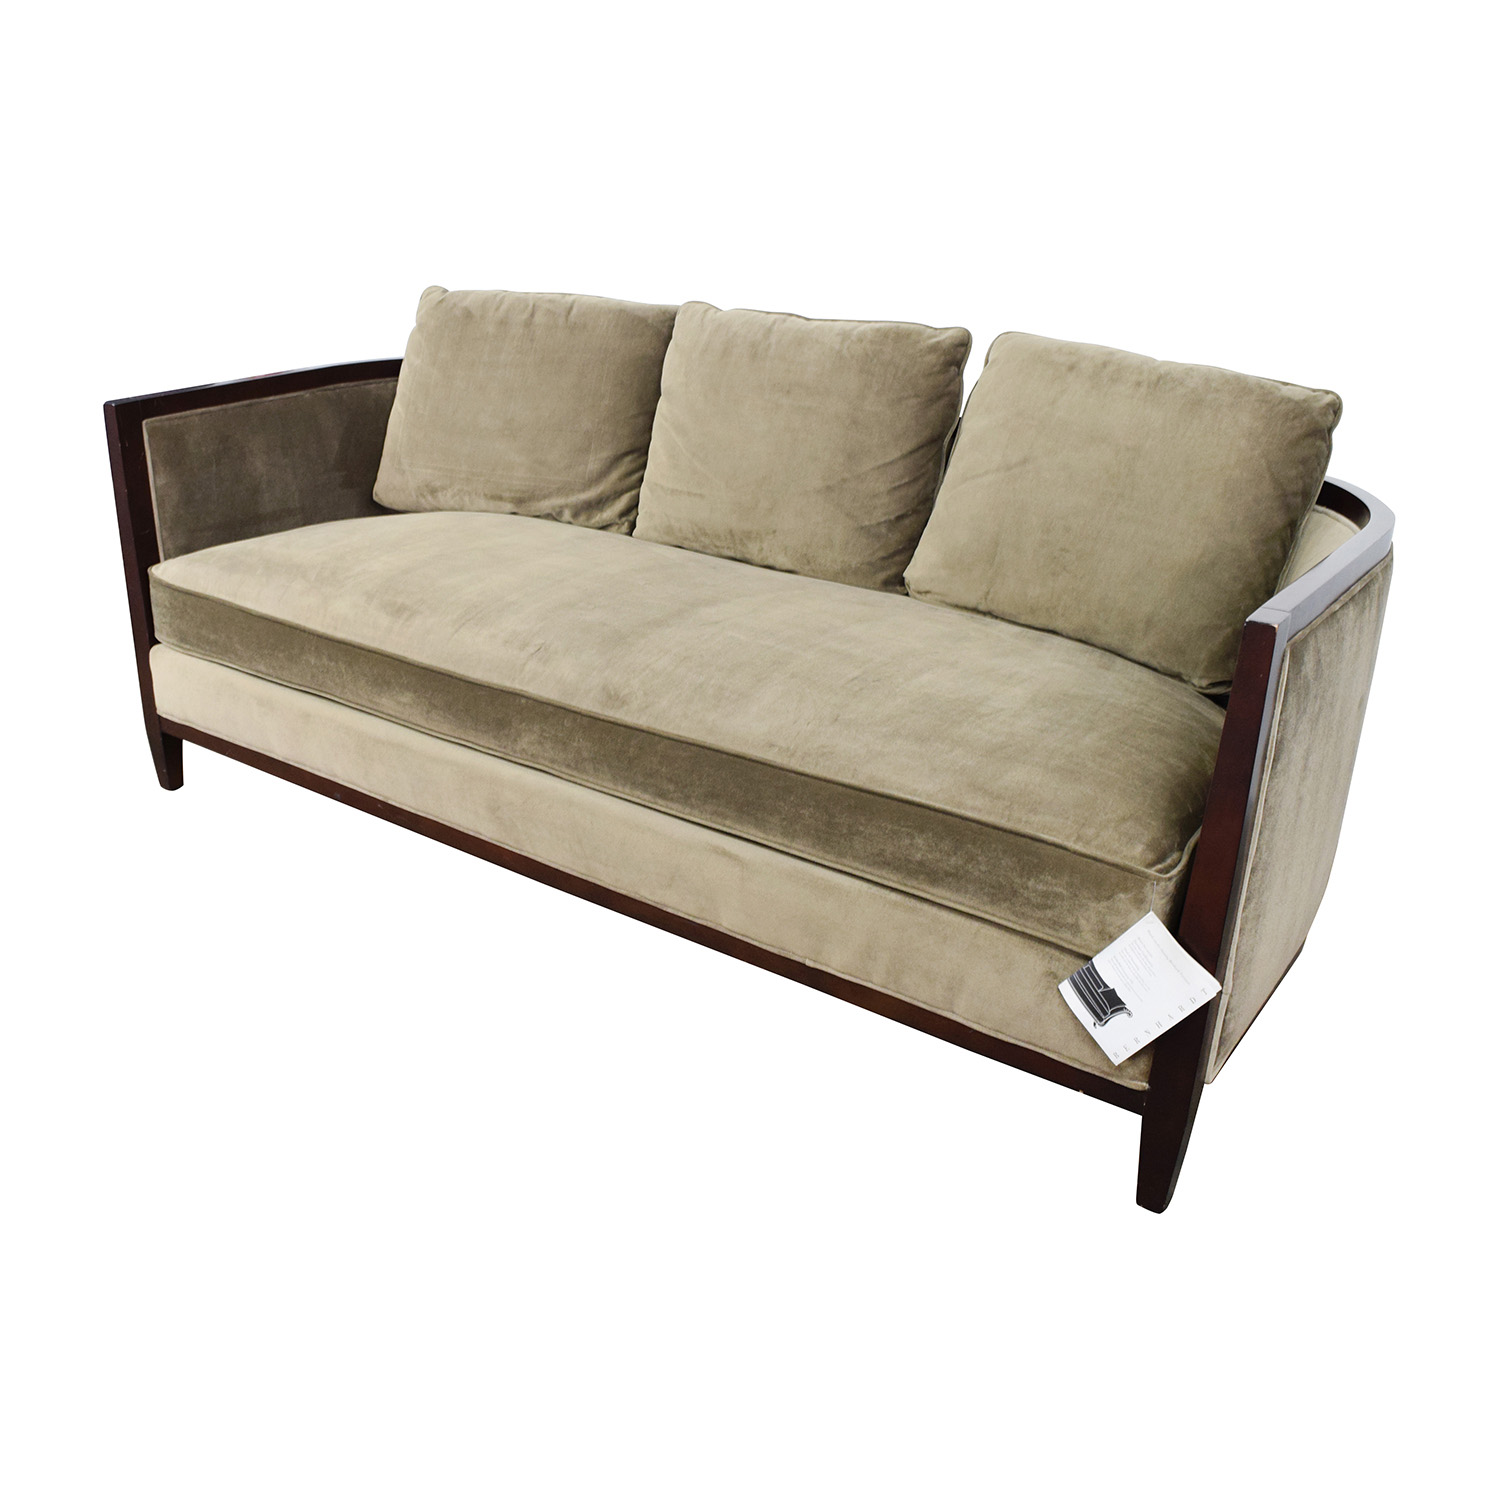 85 Off Bernhardt Bernhardt Tan Single Cushion Sofa Sofas